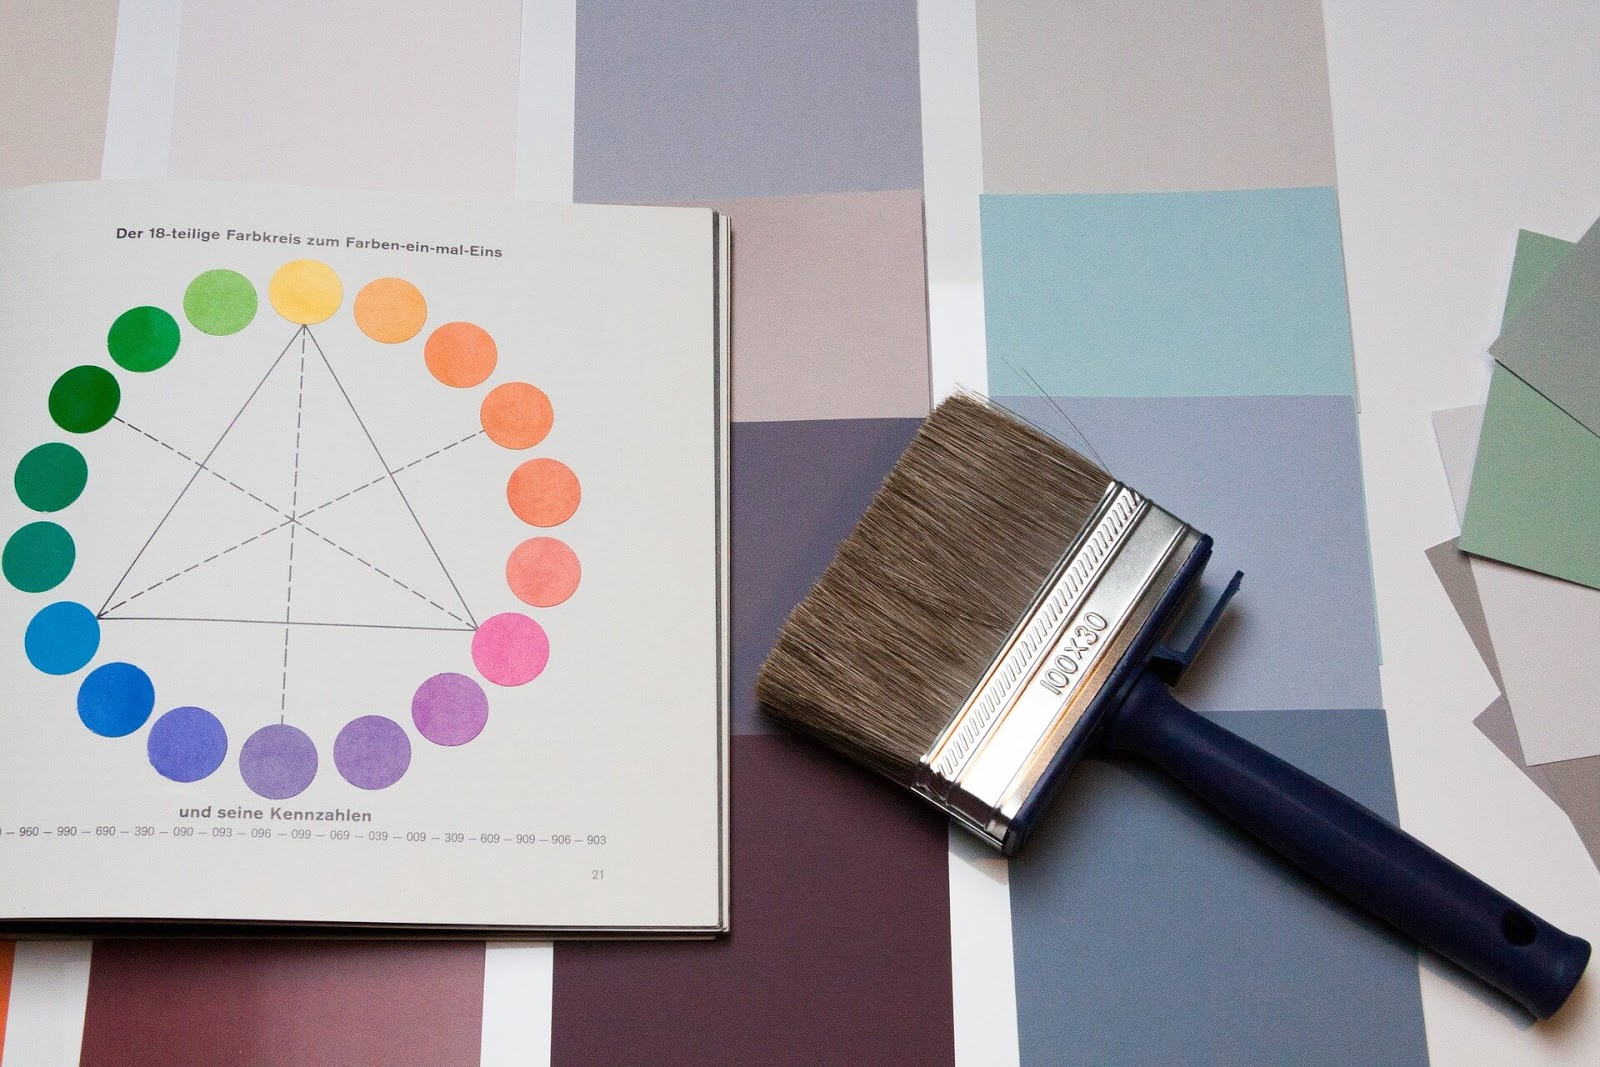 paintbrush and book open to page about color theory sitting on top of different color swatches